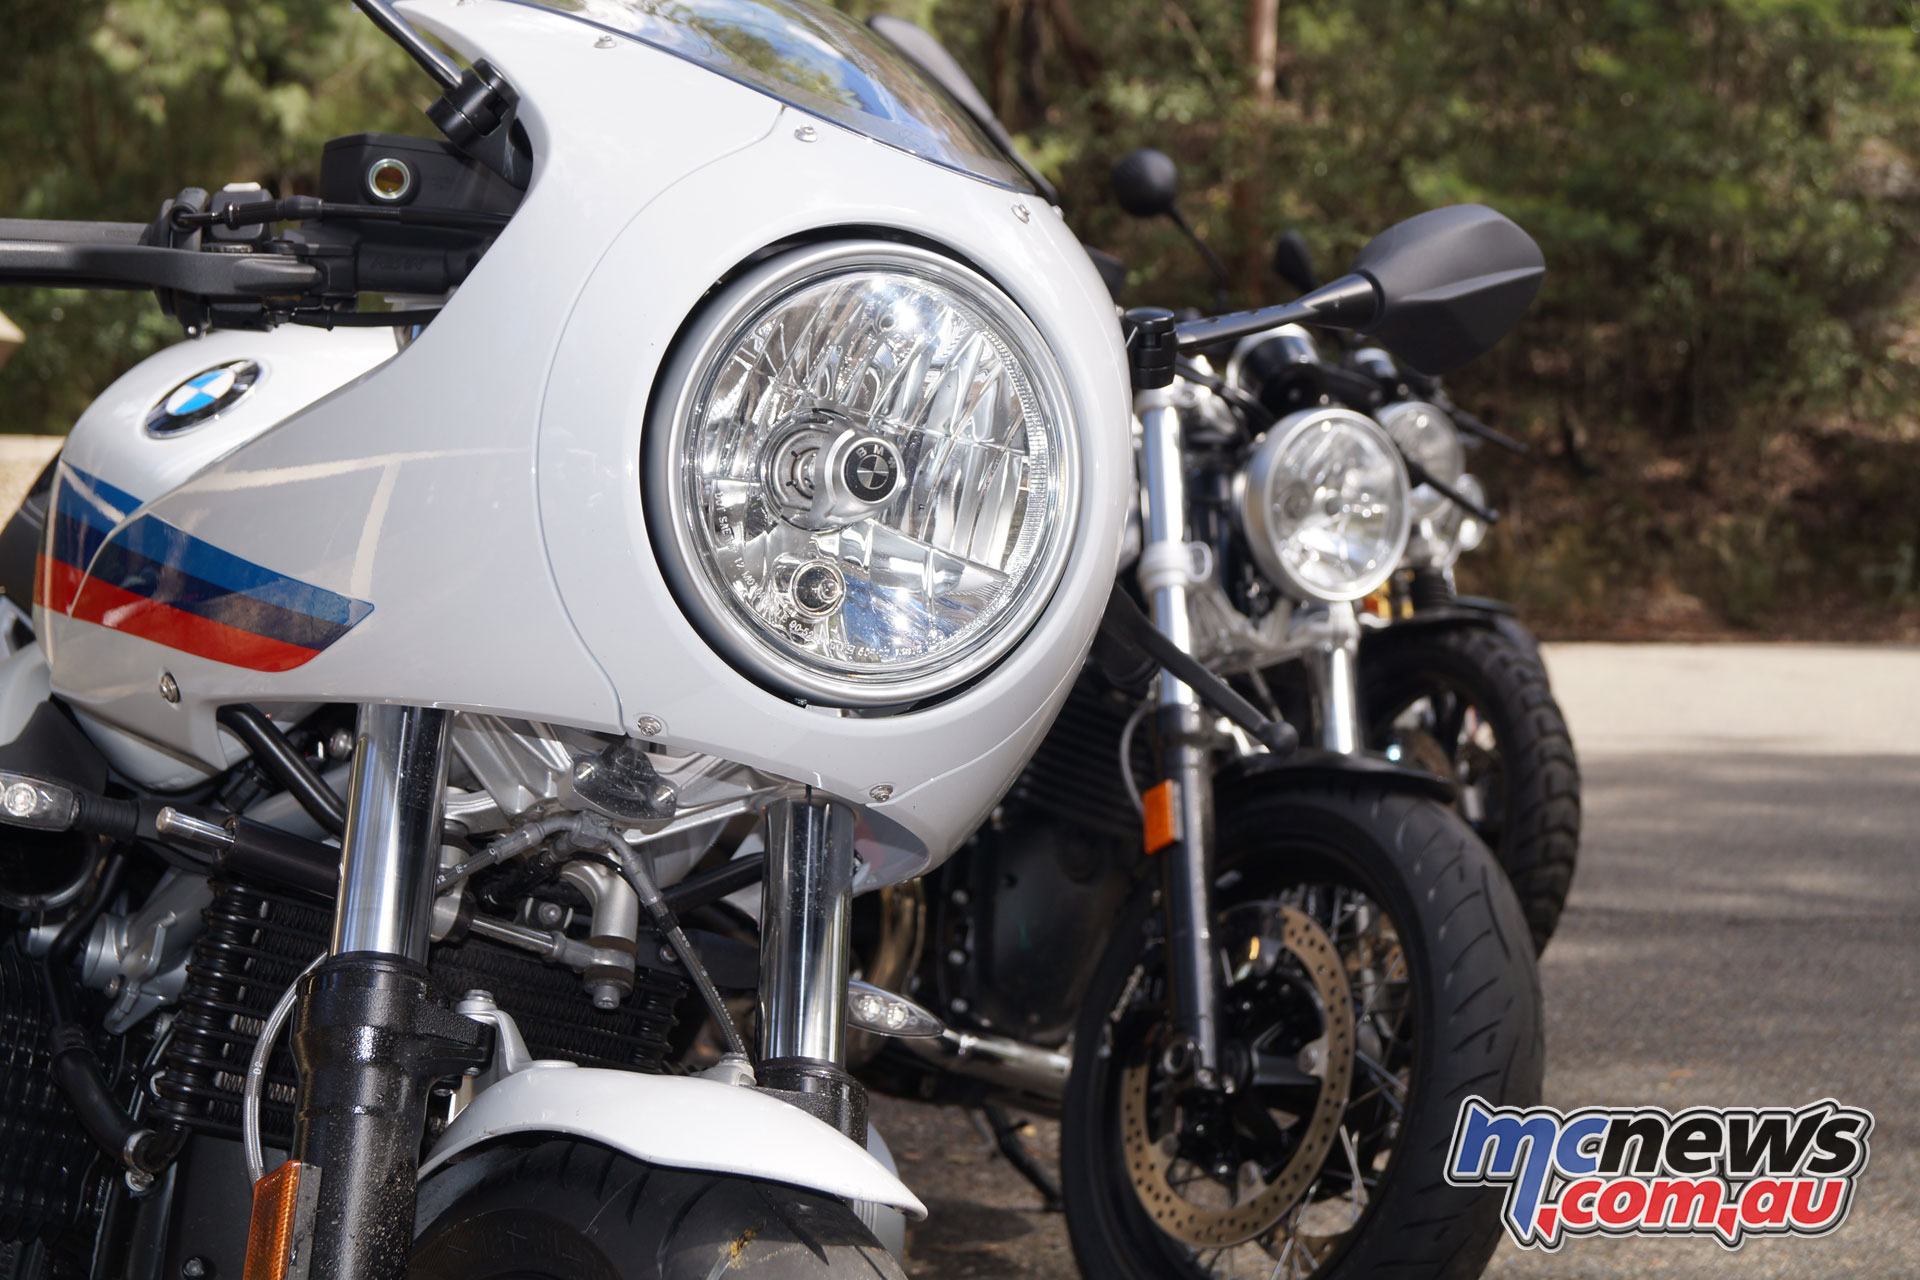 Bmw R Ninet Pure Racer Quick Fang The Top Line Of Bikes And Add To Retro Up